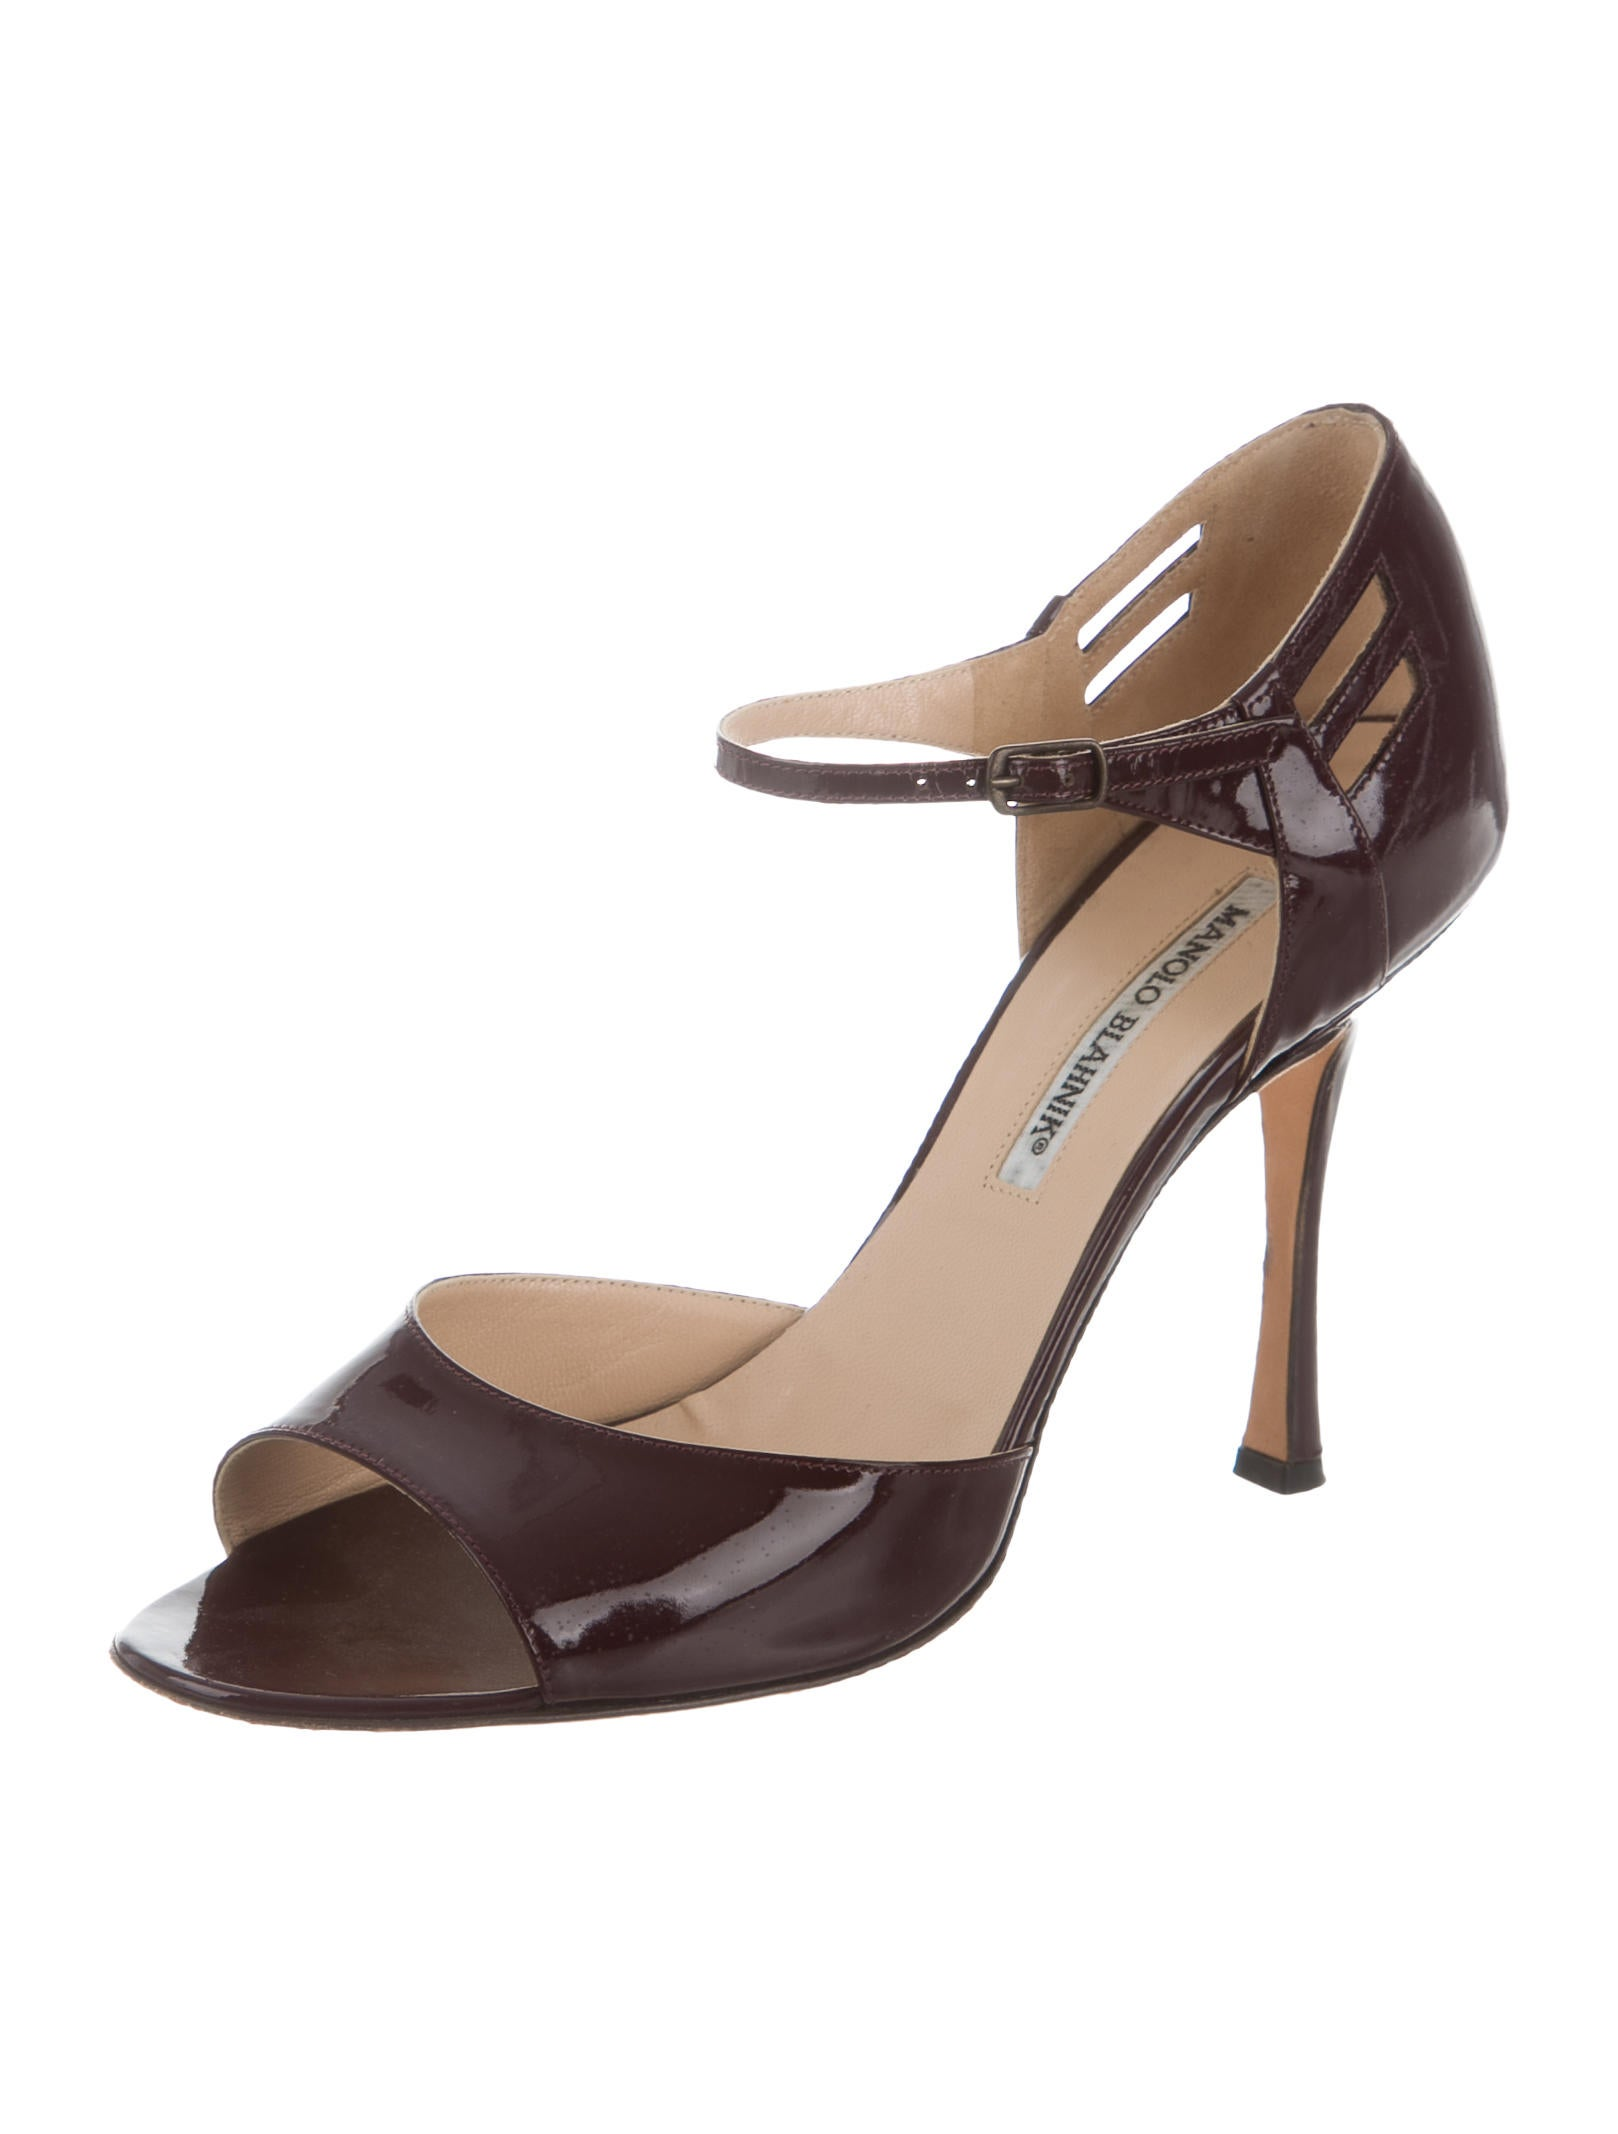 Manolo blahnik patent leather ankle strap sandals shoes for Shoes by manolo blahnik